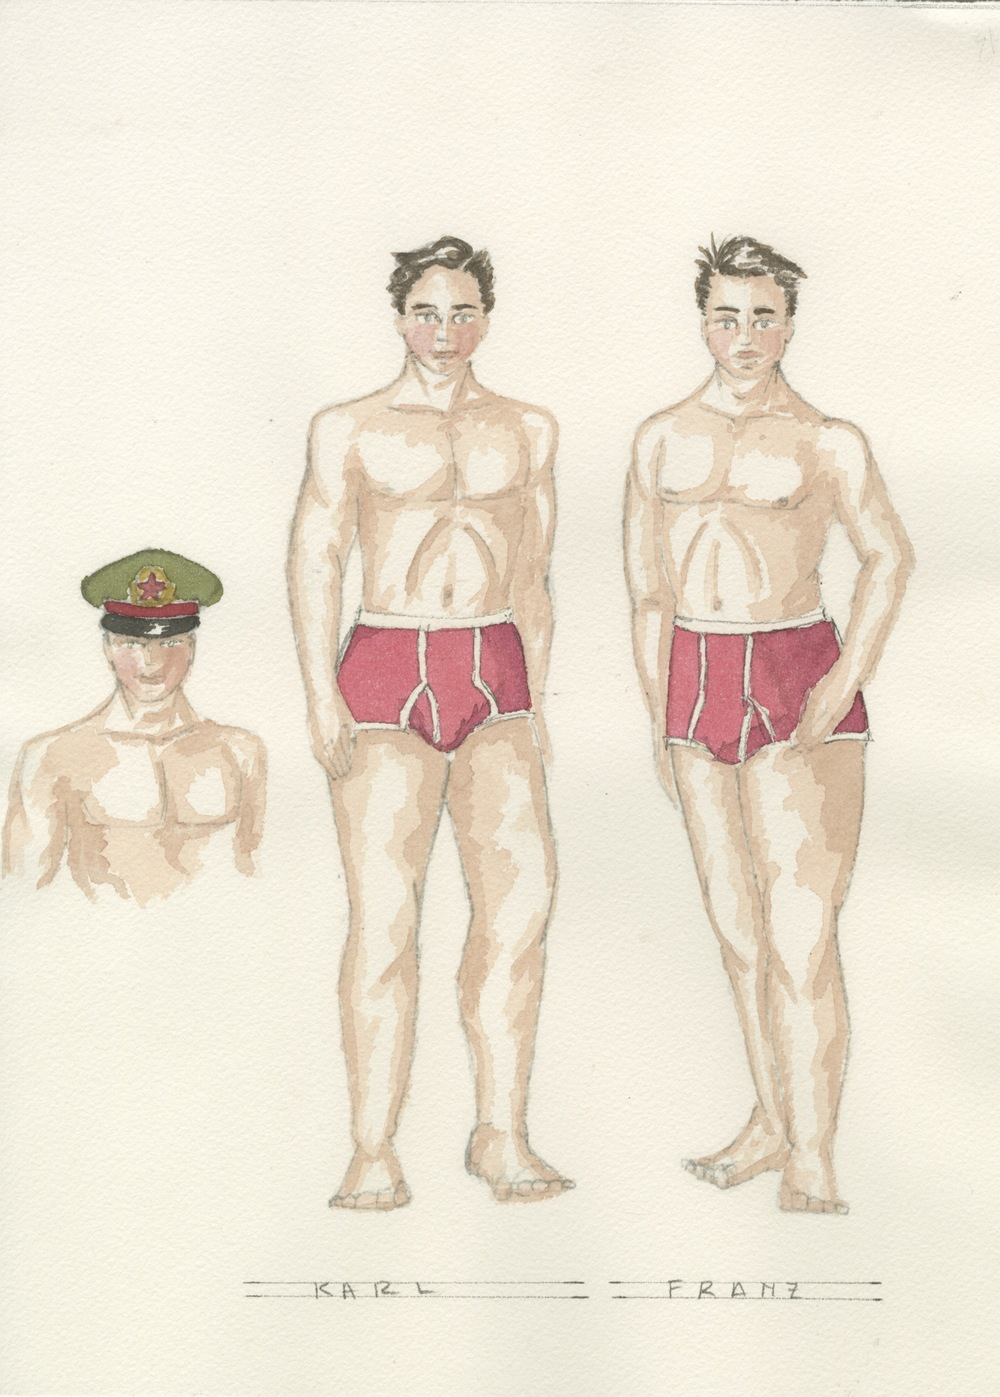 3 FRANZ and KARL UNDERWEAR.jpeg